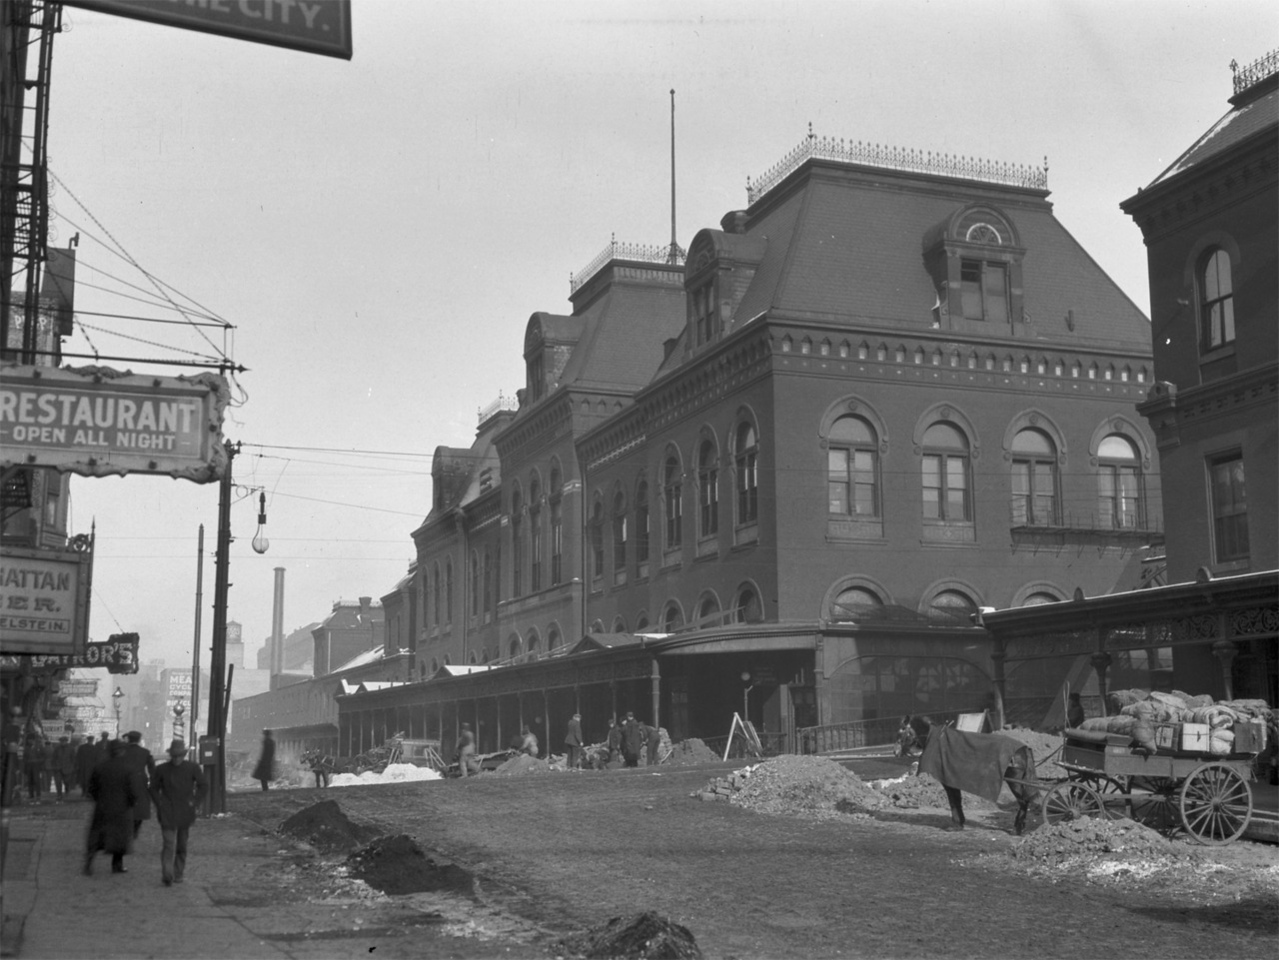 Union Depot railroad station, built in 1881 at Canal and Adams Streets.  Photographer: Charles R. Clark Source: Chicago Historical Society (ICHi-36278)   http://encyclopedia.chicagohistory.org/pages/10580.html